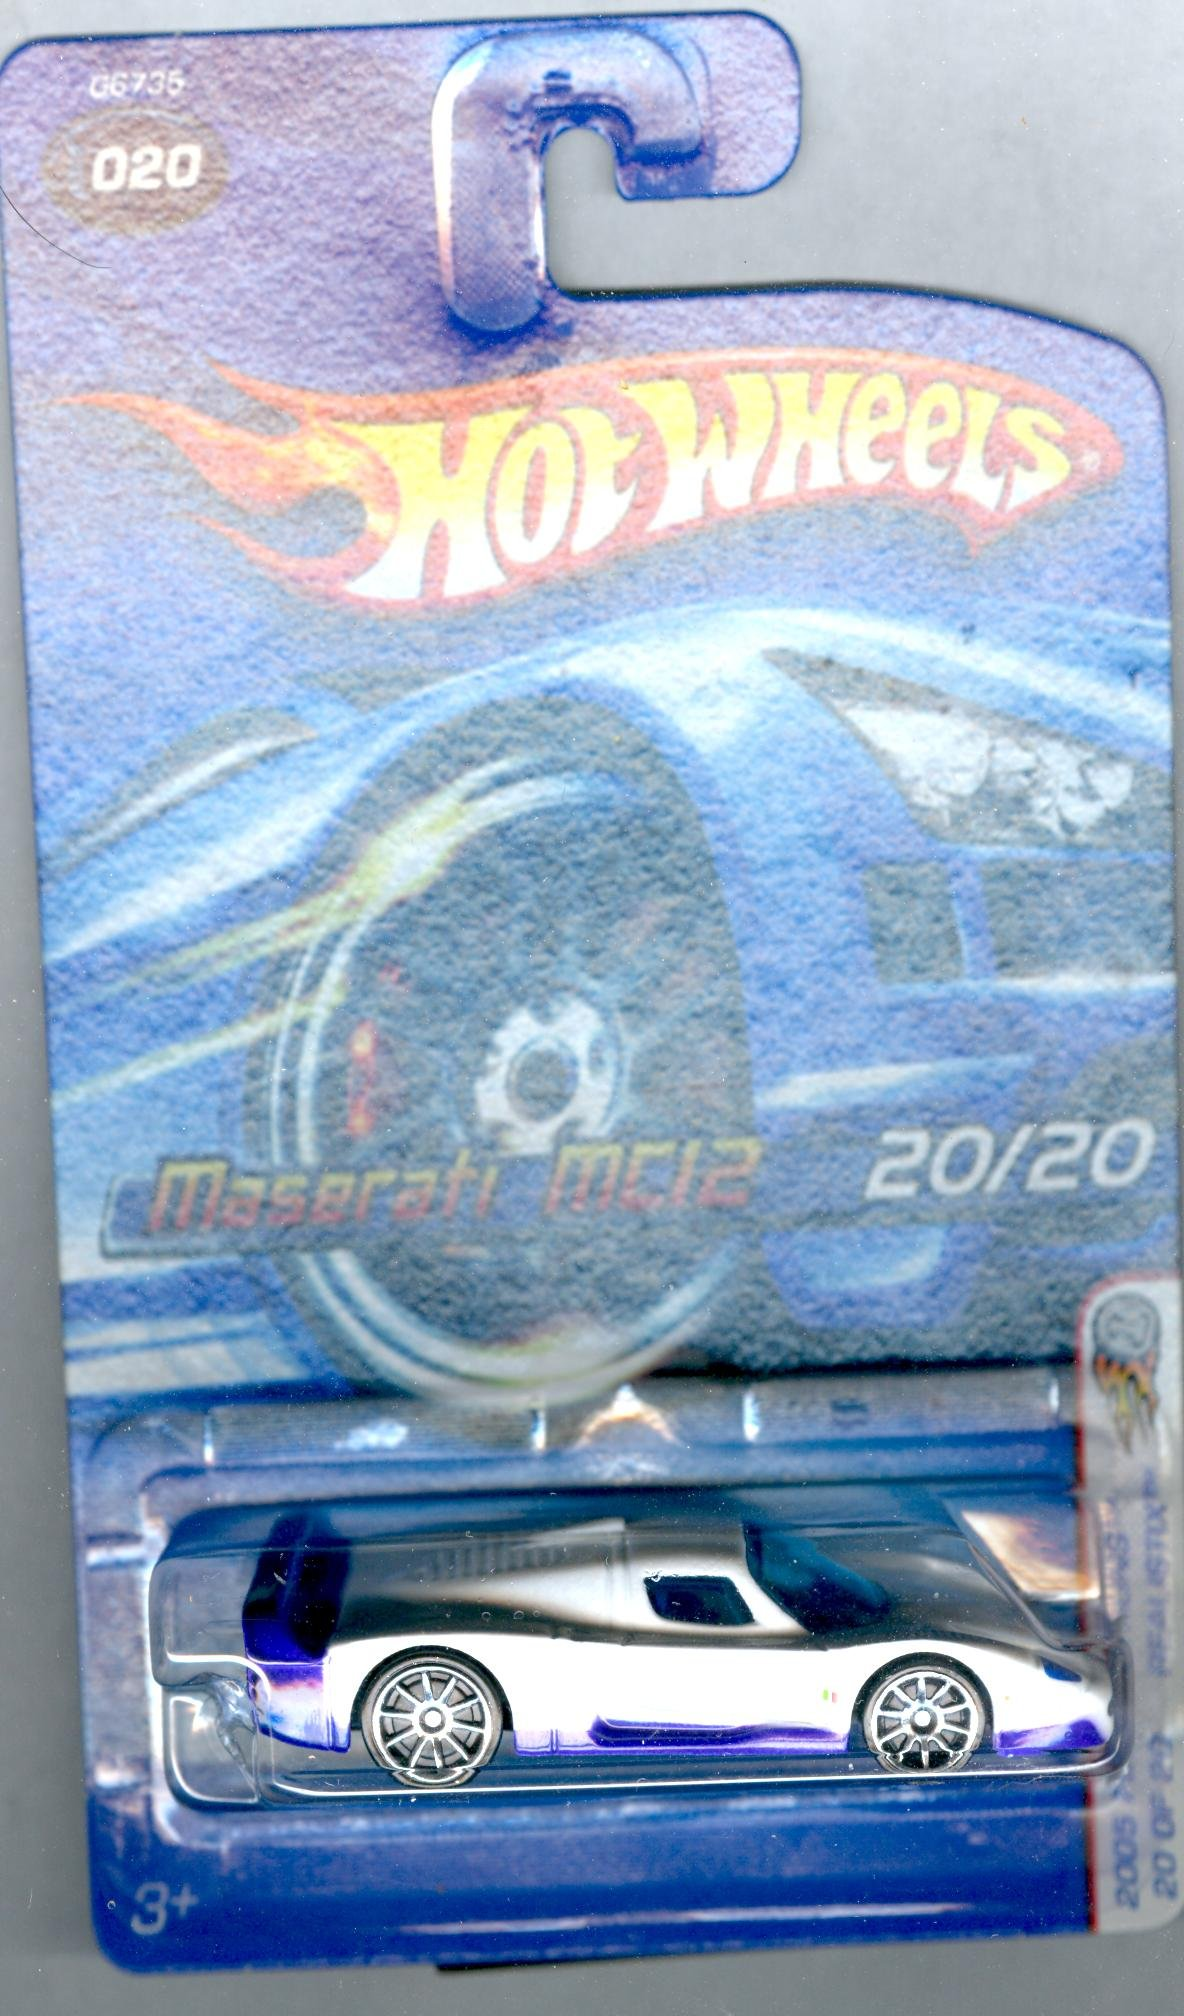 2005 First Editions Realistix Maserati MC12 -#20 10 Spoke Wheels #2005-20 Collectible Collector Car Mattel Hot Wheels 1:64 Scale